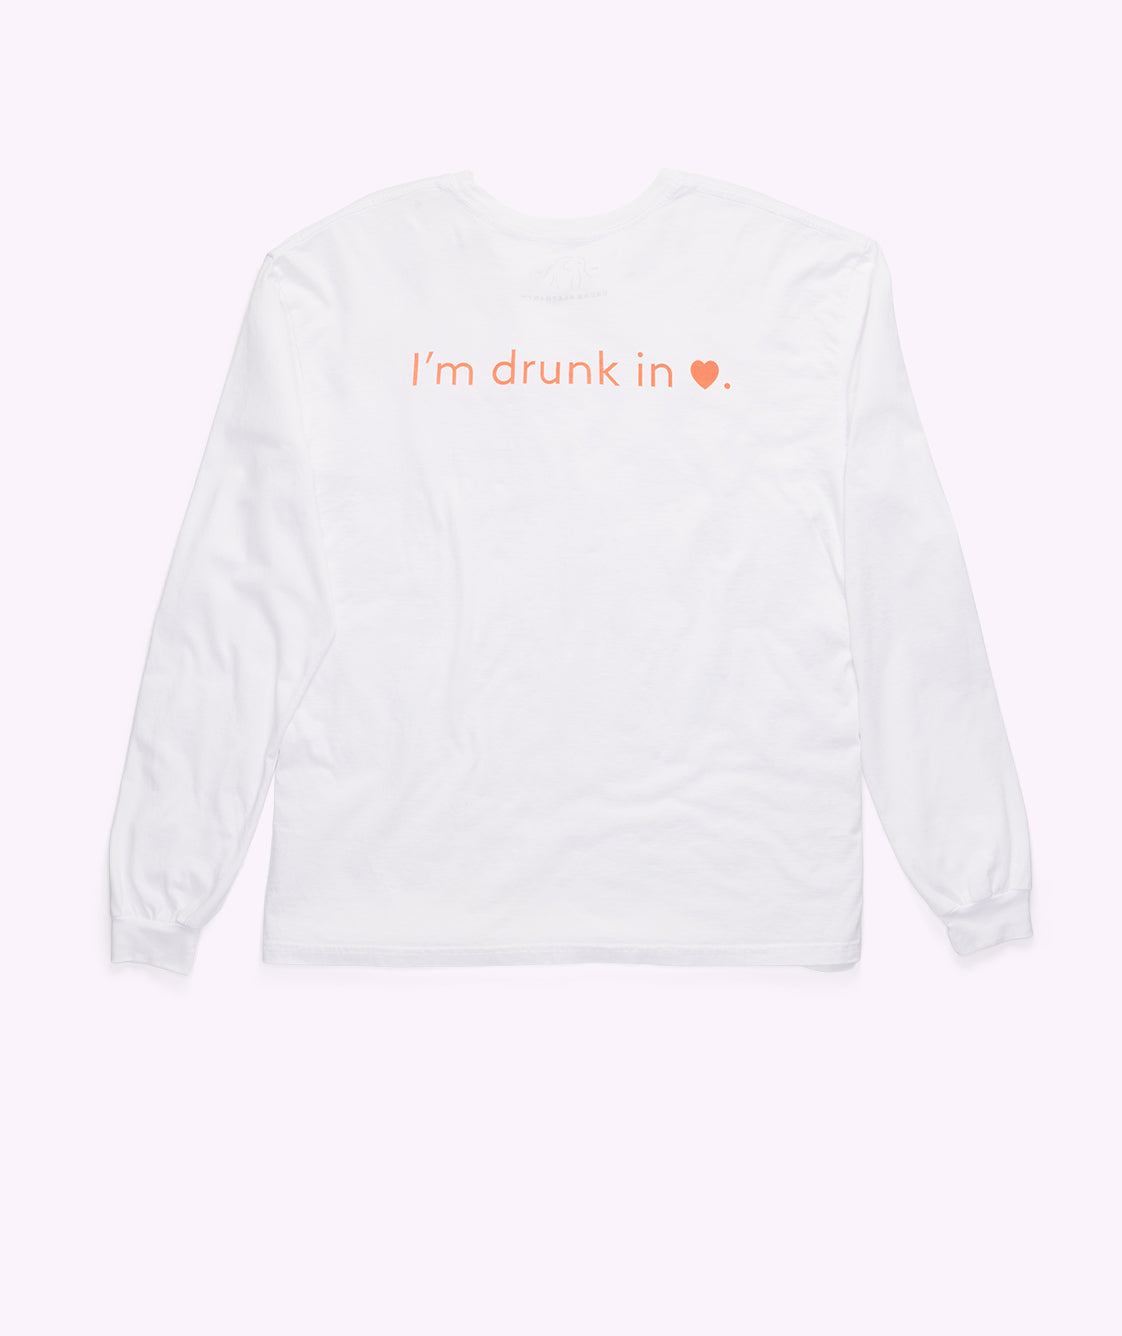 The Drunk Life Classic T-Shirt - Long Sleeve Alternative View